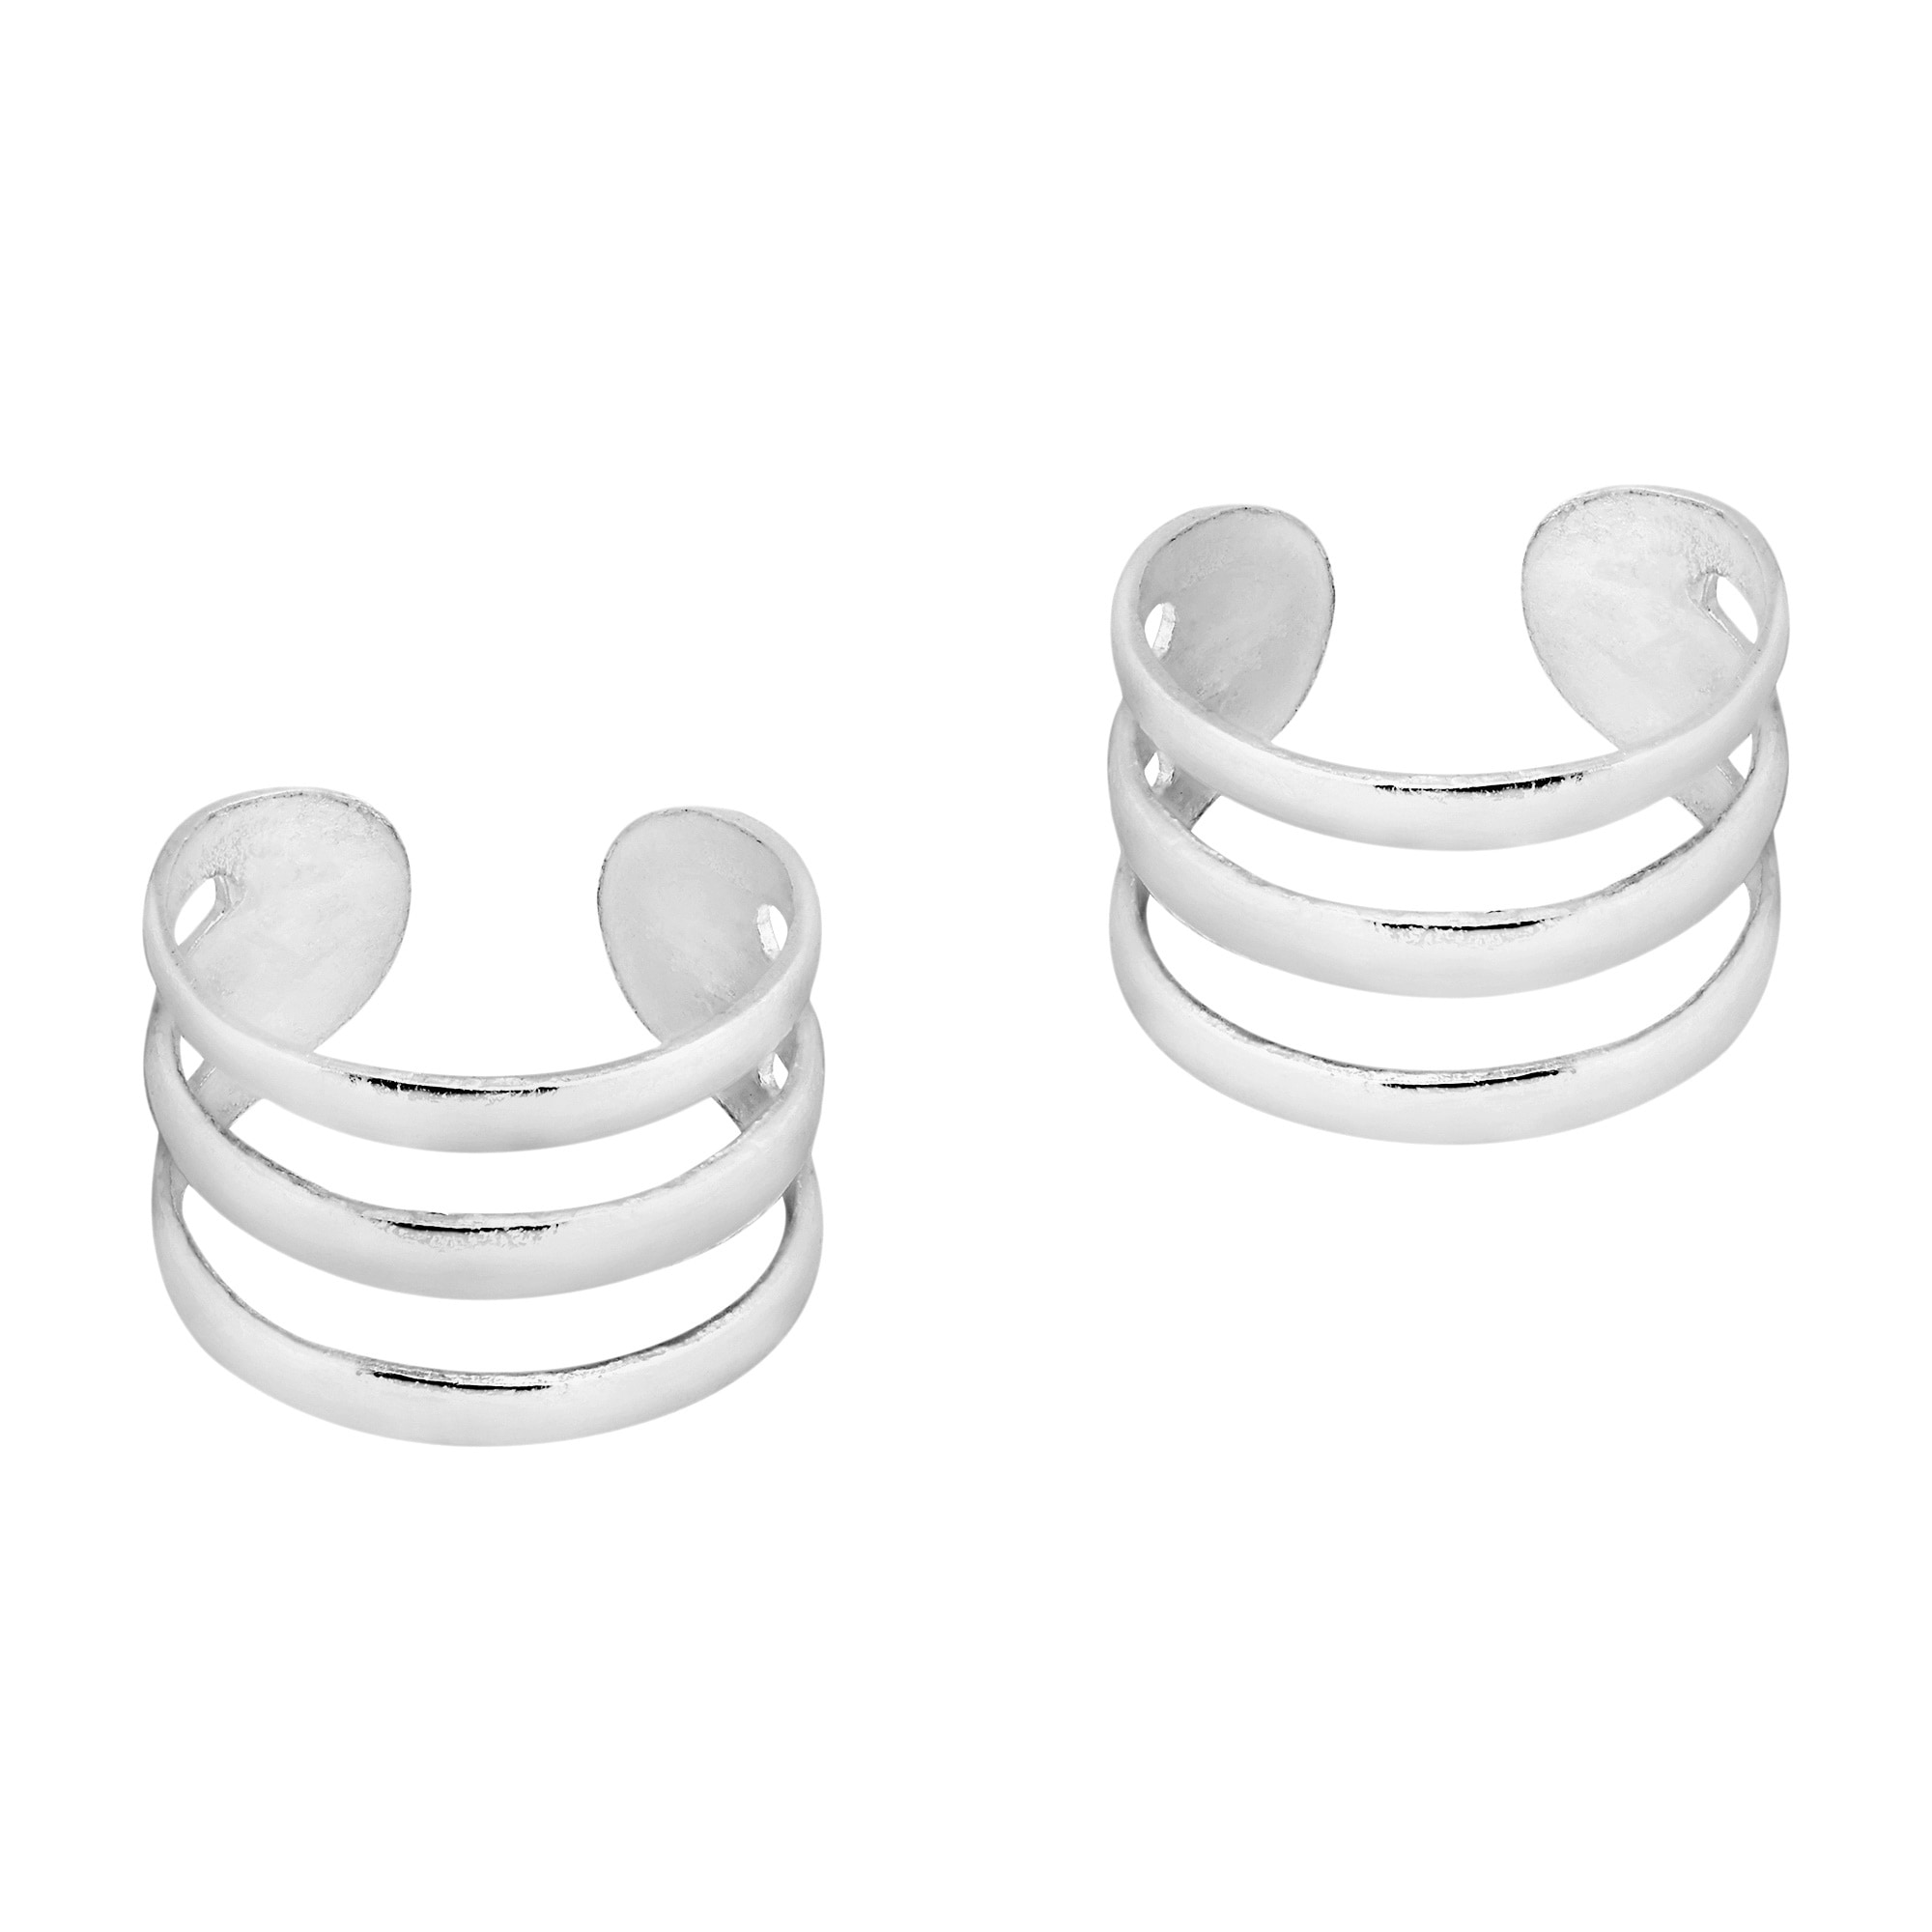 Helix Clip On Earring Style Sterling Silver Ear Cuff Triple Band Design Pair